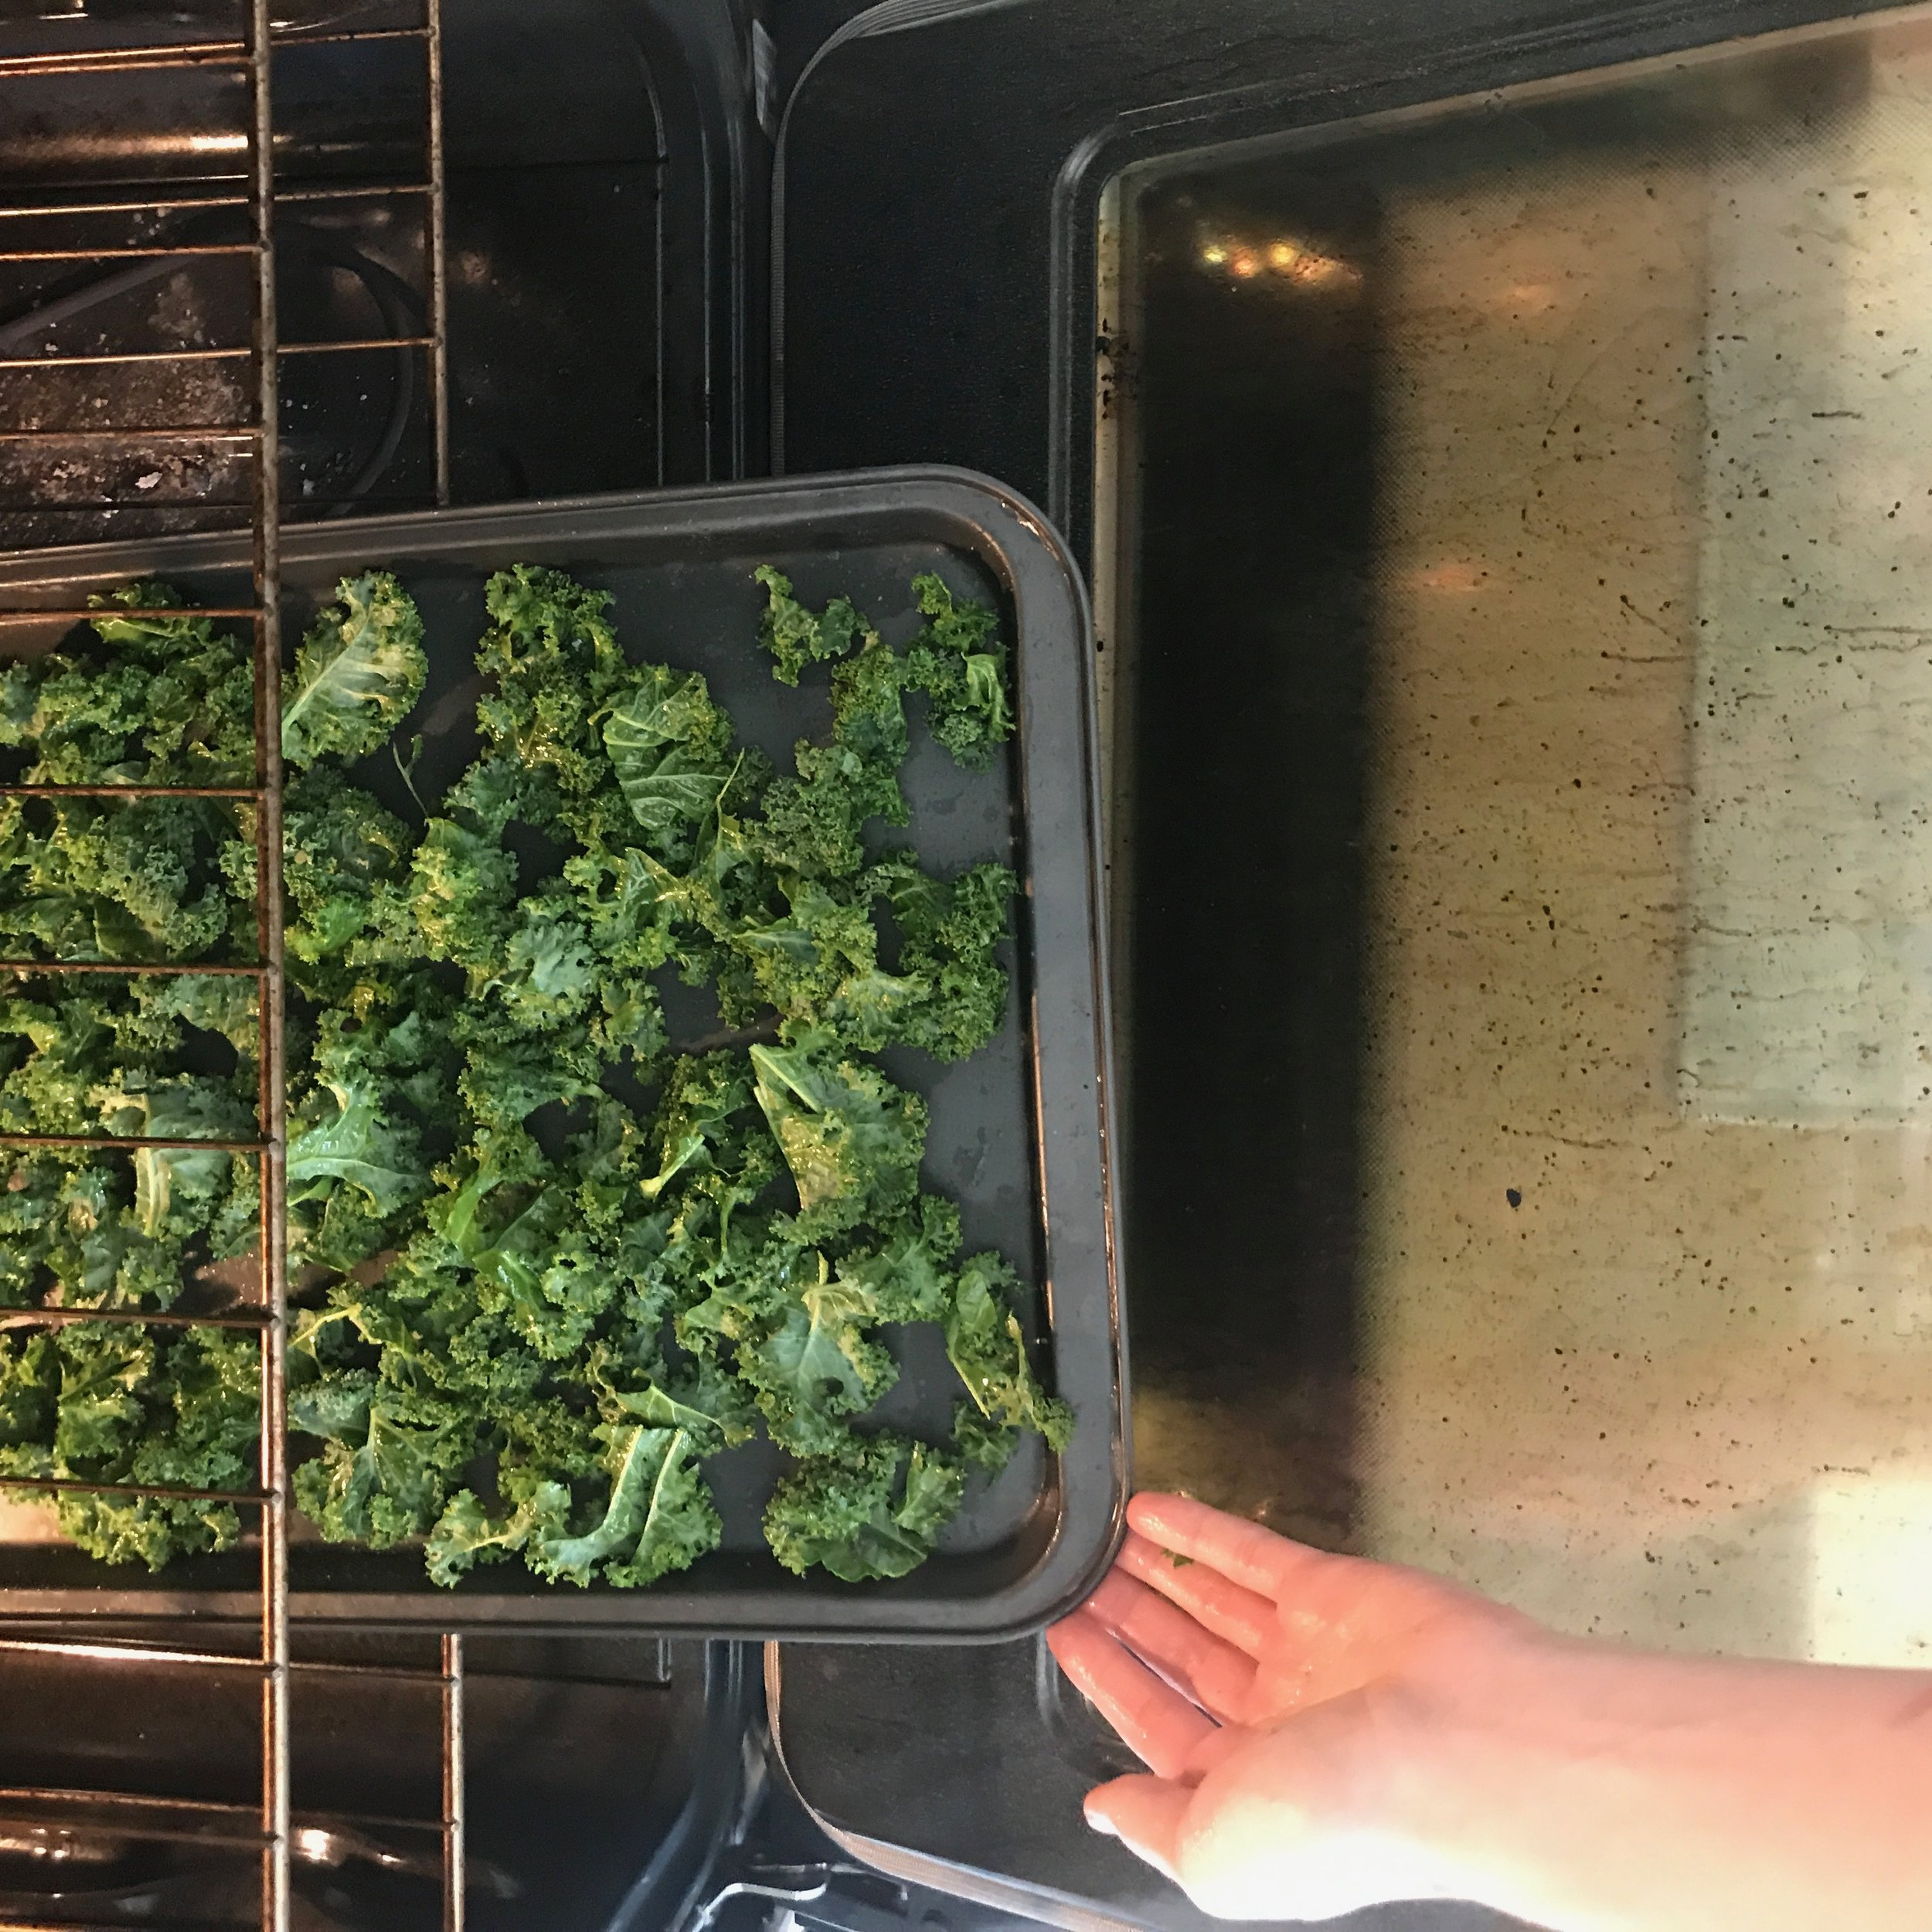 """After two months on my Anit-Candida Diet (ACD)... I was starting to get a little bit loosey goosey. My protocol was pretty """"up to interpretation"""" as far was what wasn't included on the list. I googled it... until I found someone who said I could eat it or not and just went with that. Fast forward to now.  I found a protocol online. I had happened upon this website SO many times when researching about candida... and finally I was scrolling through their program.   * Evidence based, up to date research  * 60 days...  * Five stages  * Guidance, recipes, symptom tracker.  I couldn't believe my eyes. I scrolled down and down, just excited about a program that gave me a little bit more direction and support... and in 60 days. Now that sounded too good to be true. My original protocol was 3 months, but since I was so lax toward the end, I needed to start over with something stricter and fully commit til the end."""